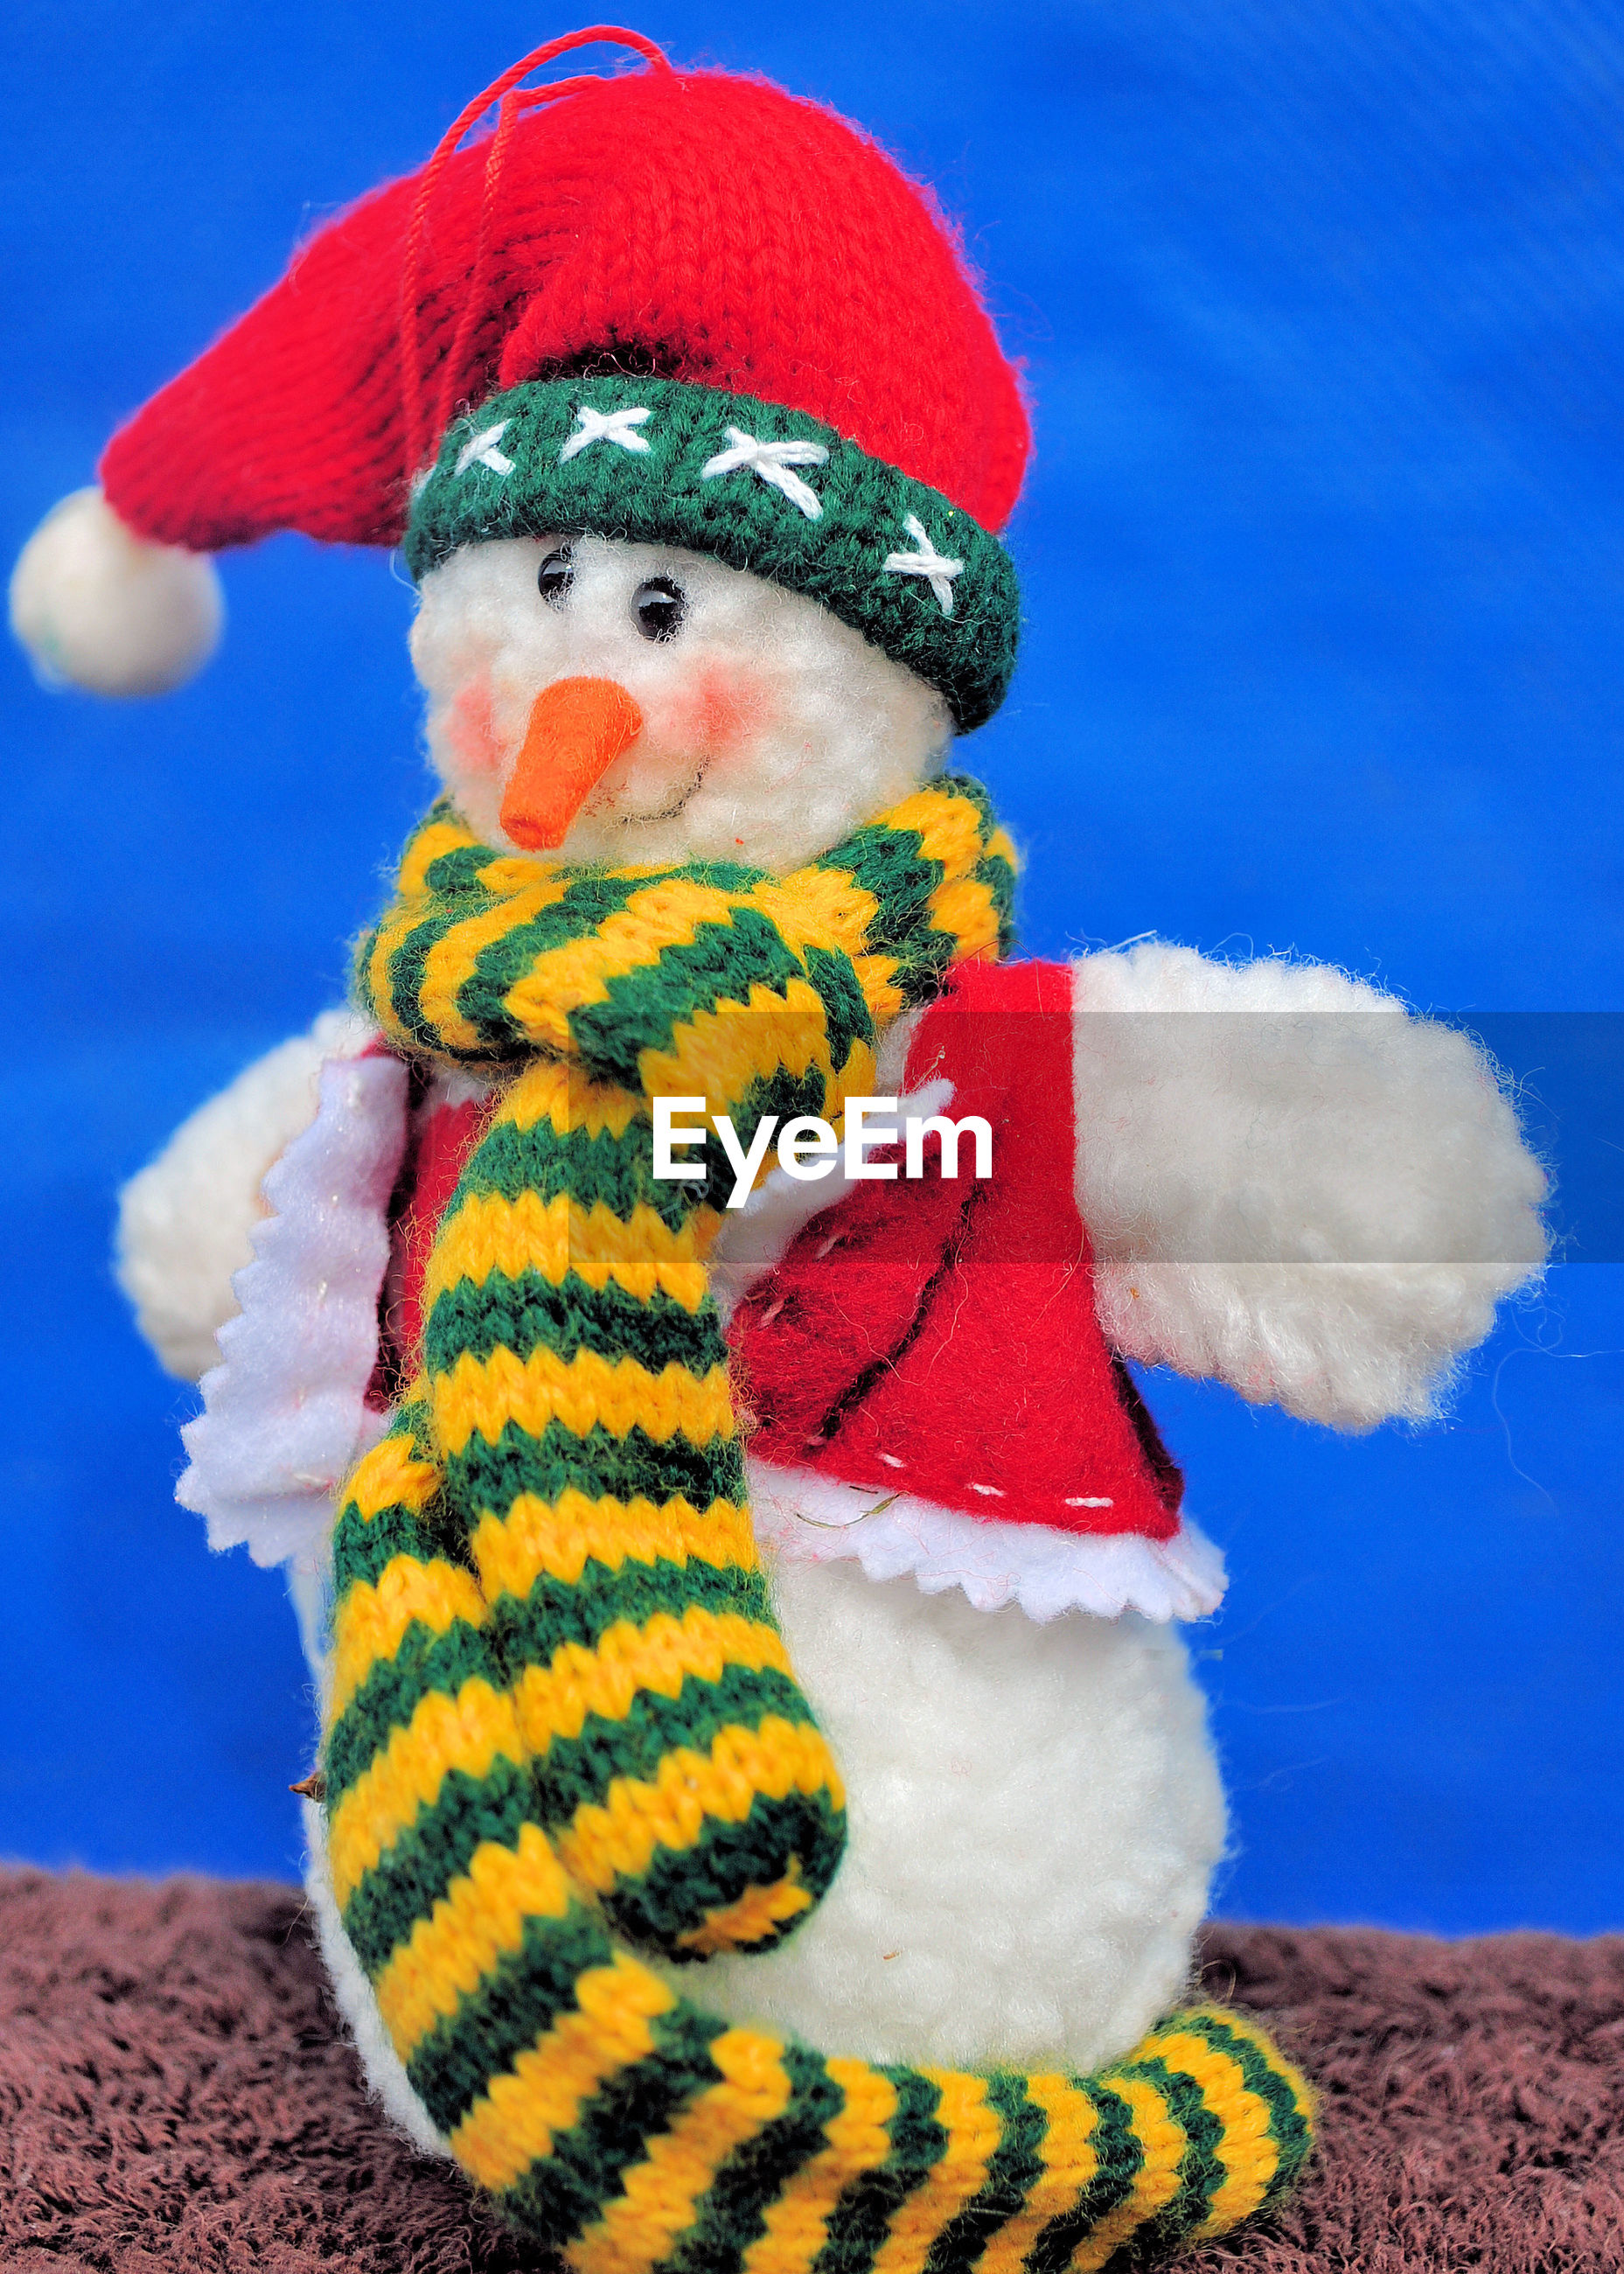 Close-up of stuffed snowman toy on table